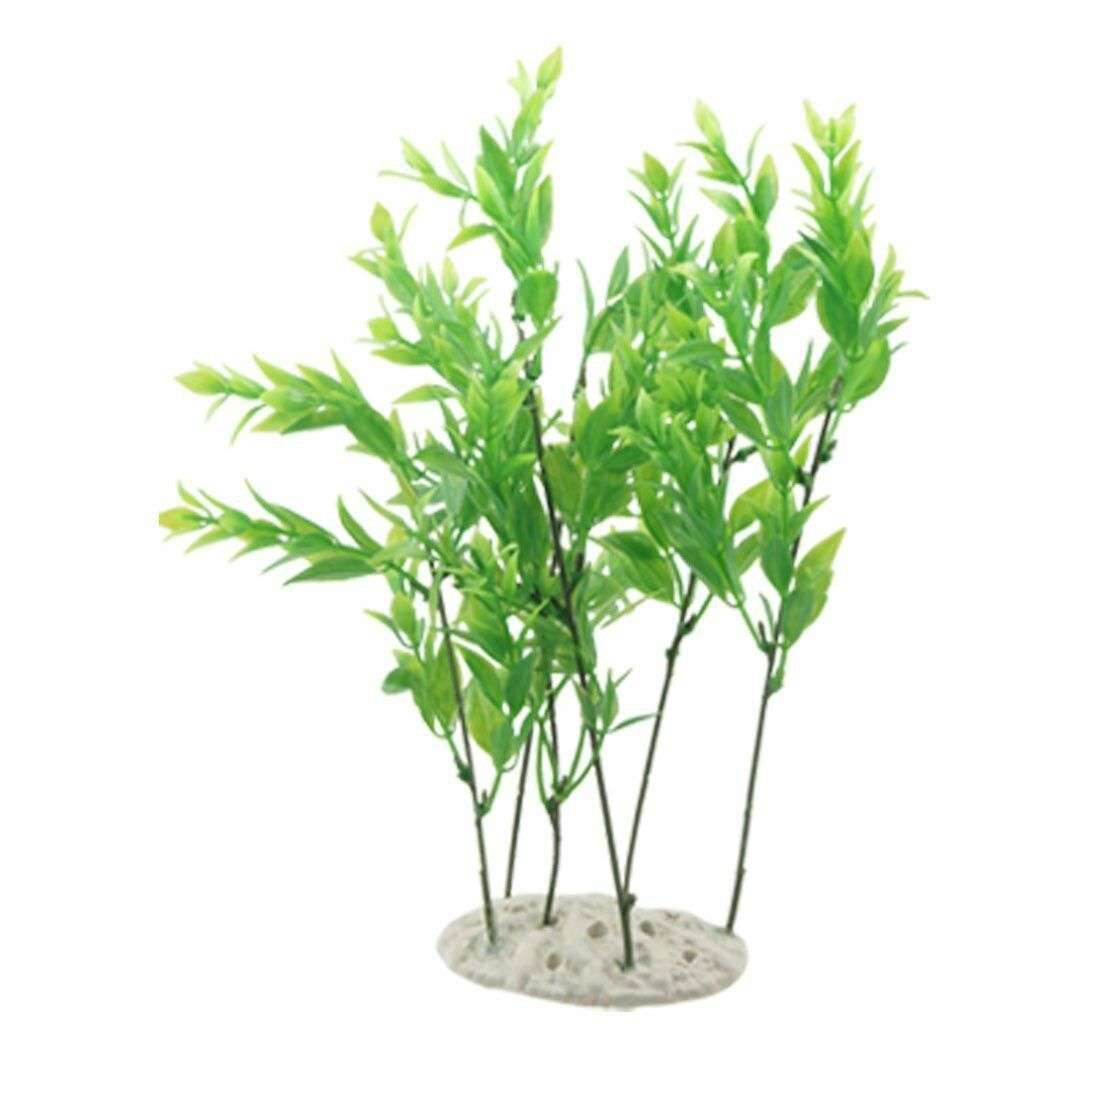 Jardin Decorative Plastic Aquascaping Grass Aquarium Plant Ornament, Green NEW